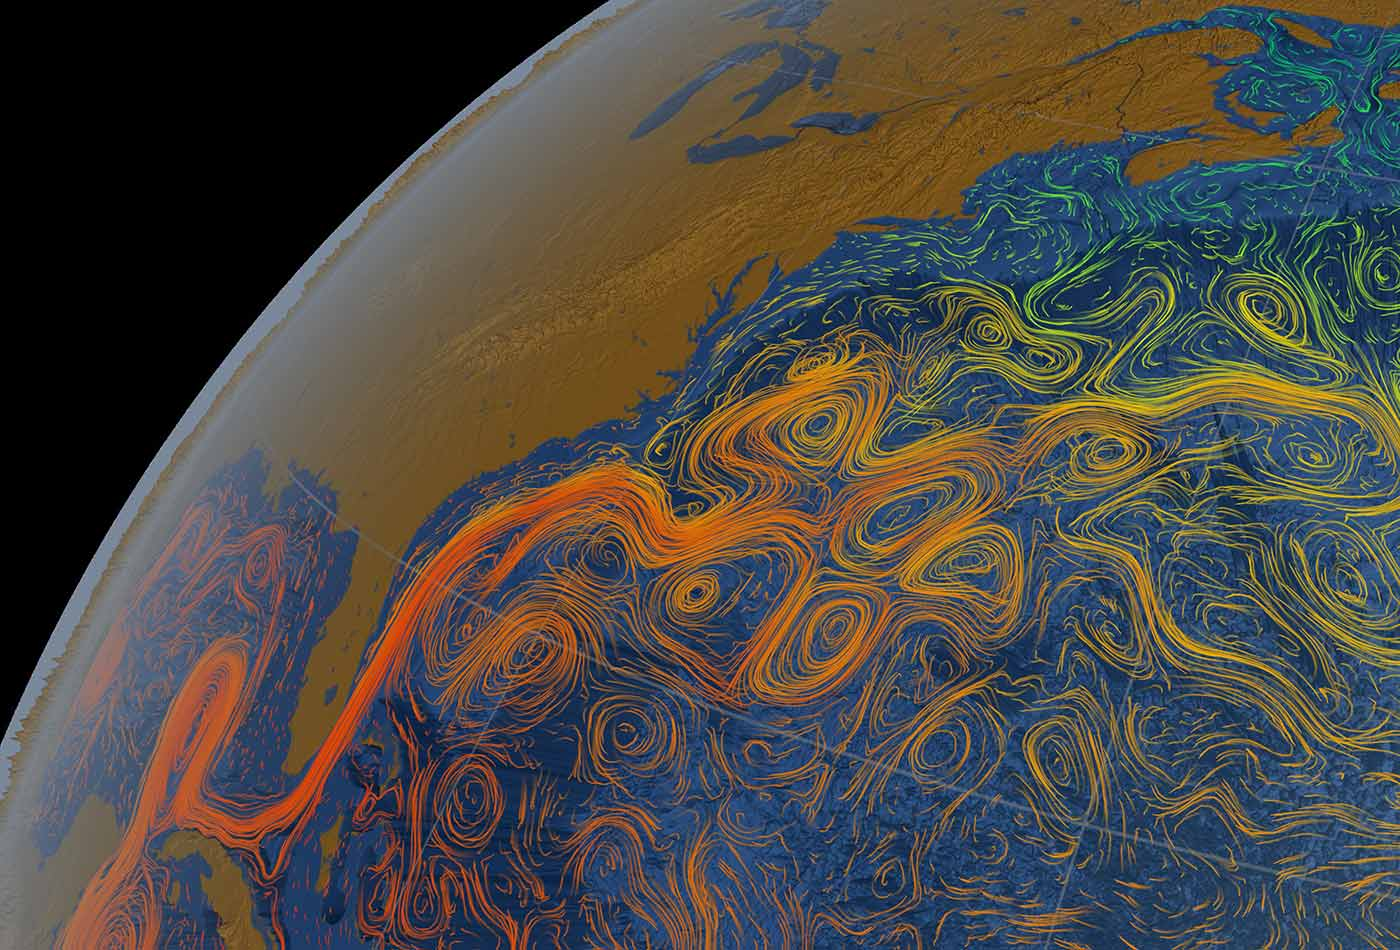 Gulf Stream Sea Surface Currents and Temperatures